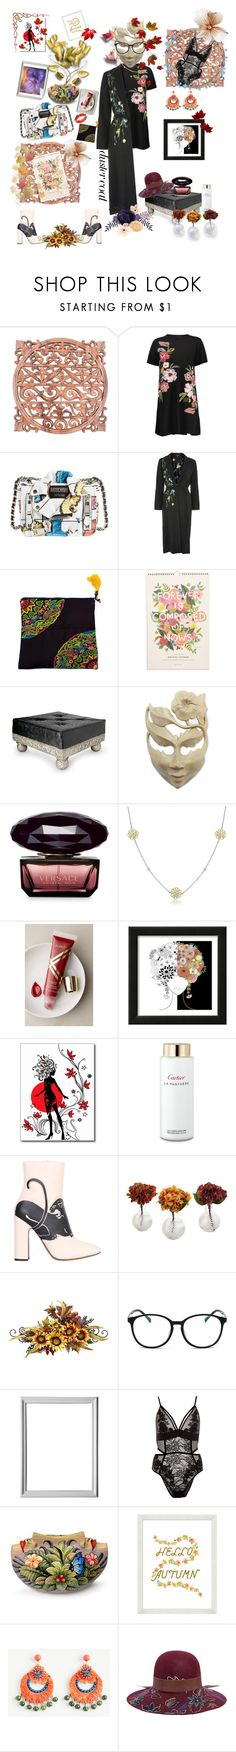 """🍂🍂🍁🍂🍂🍂🍁Welcome September 🍂🍂🍂🍂🍂🍁"" by maijah ❤ liked on Polyvore featuring NOVICA, Moschino, Topshop, Rifle Paper Co, Versace, Bling Jewelry, Albeit, Cartier, Valentino and Nearly Natural"